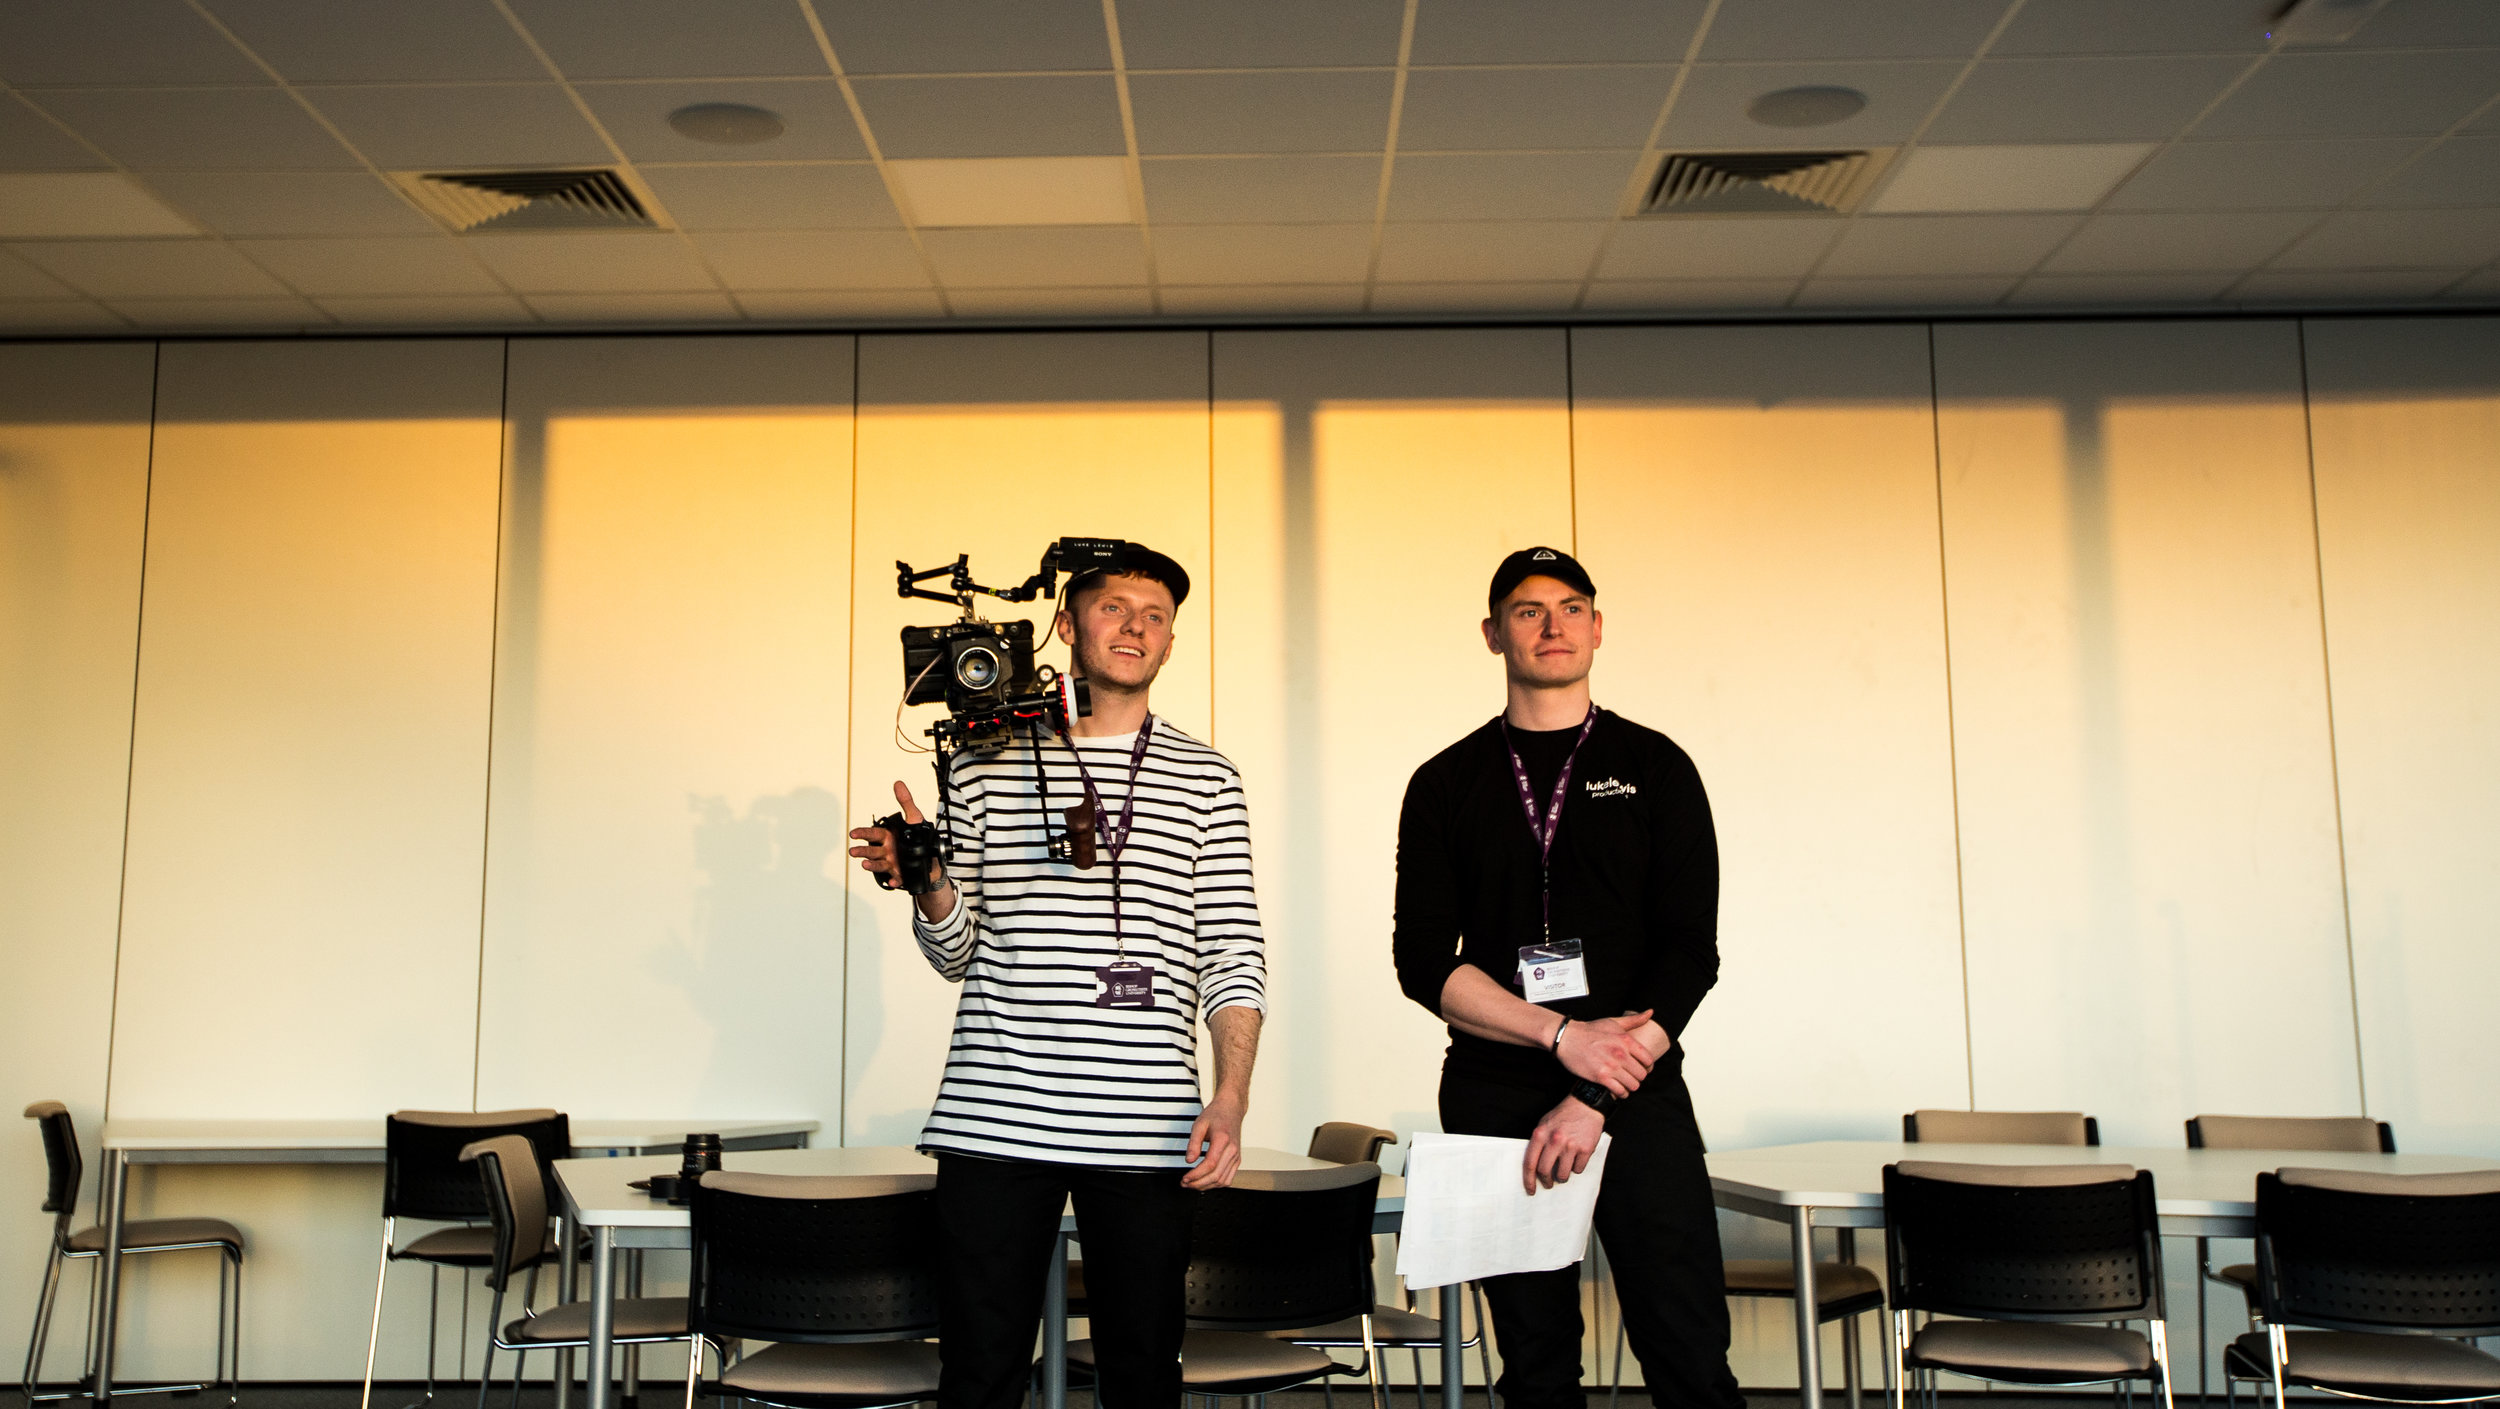 Luke and Adam working at Bishop Grosseteste University